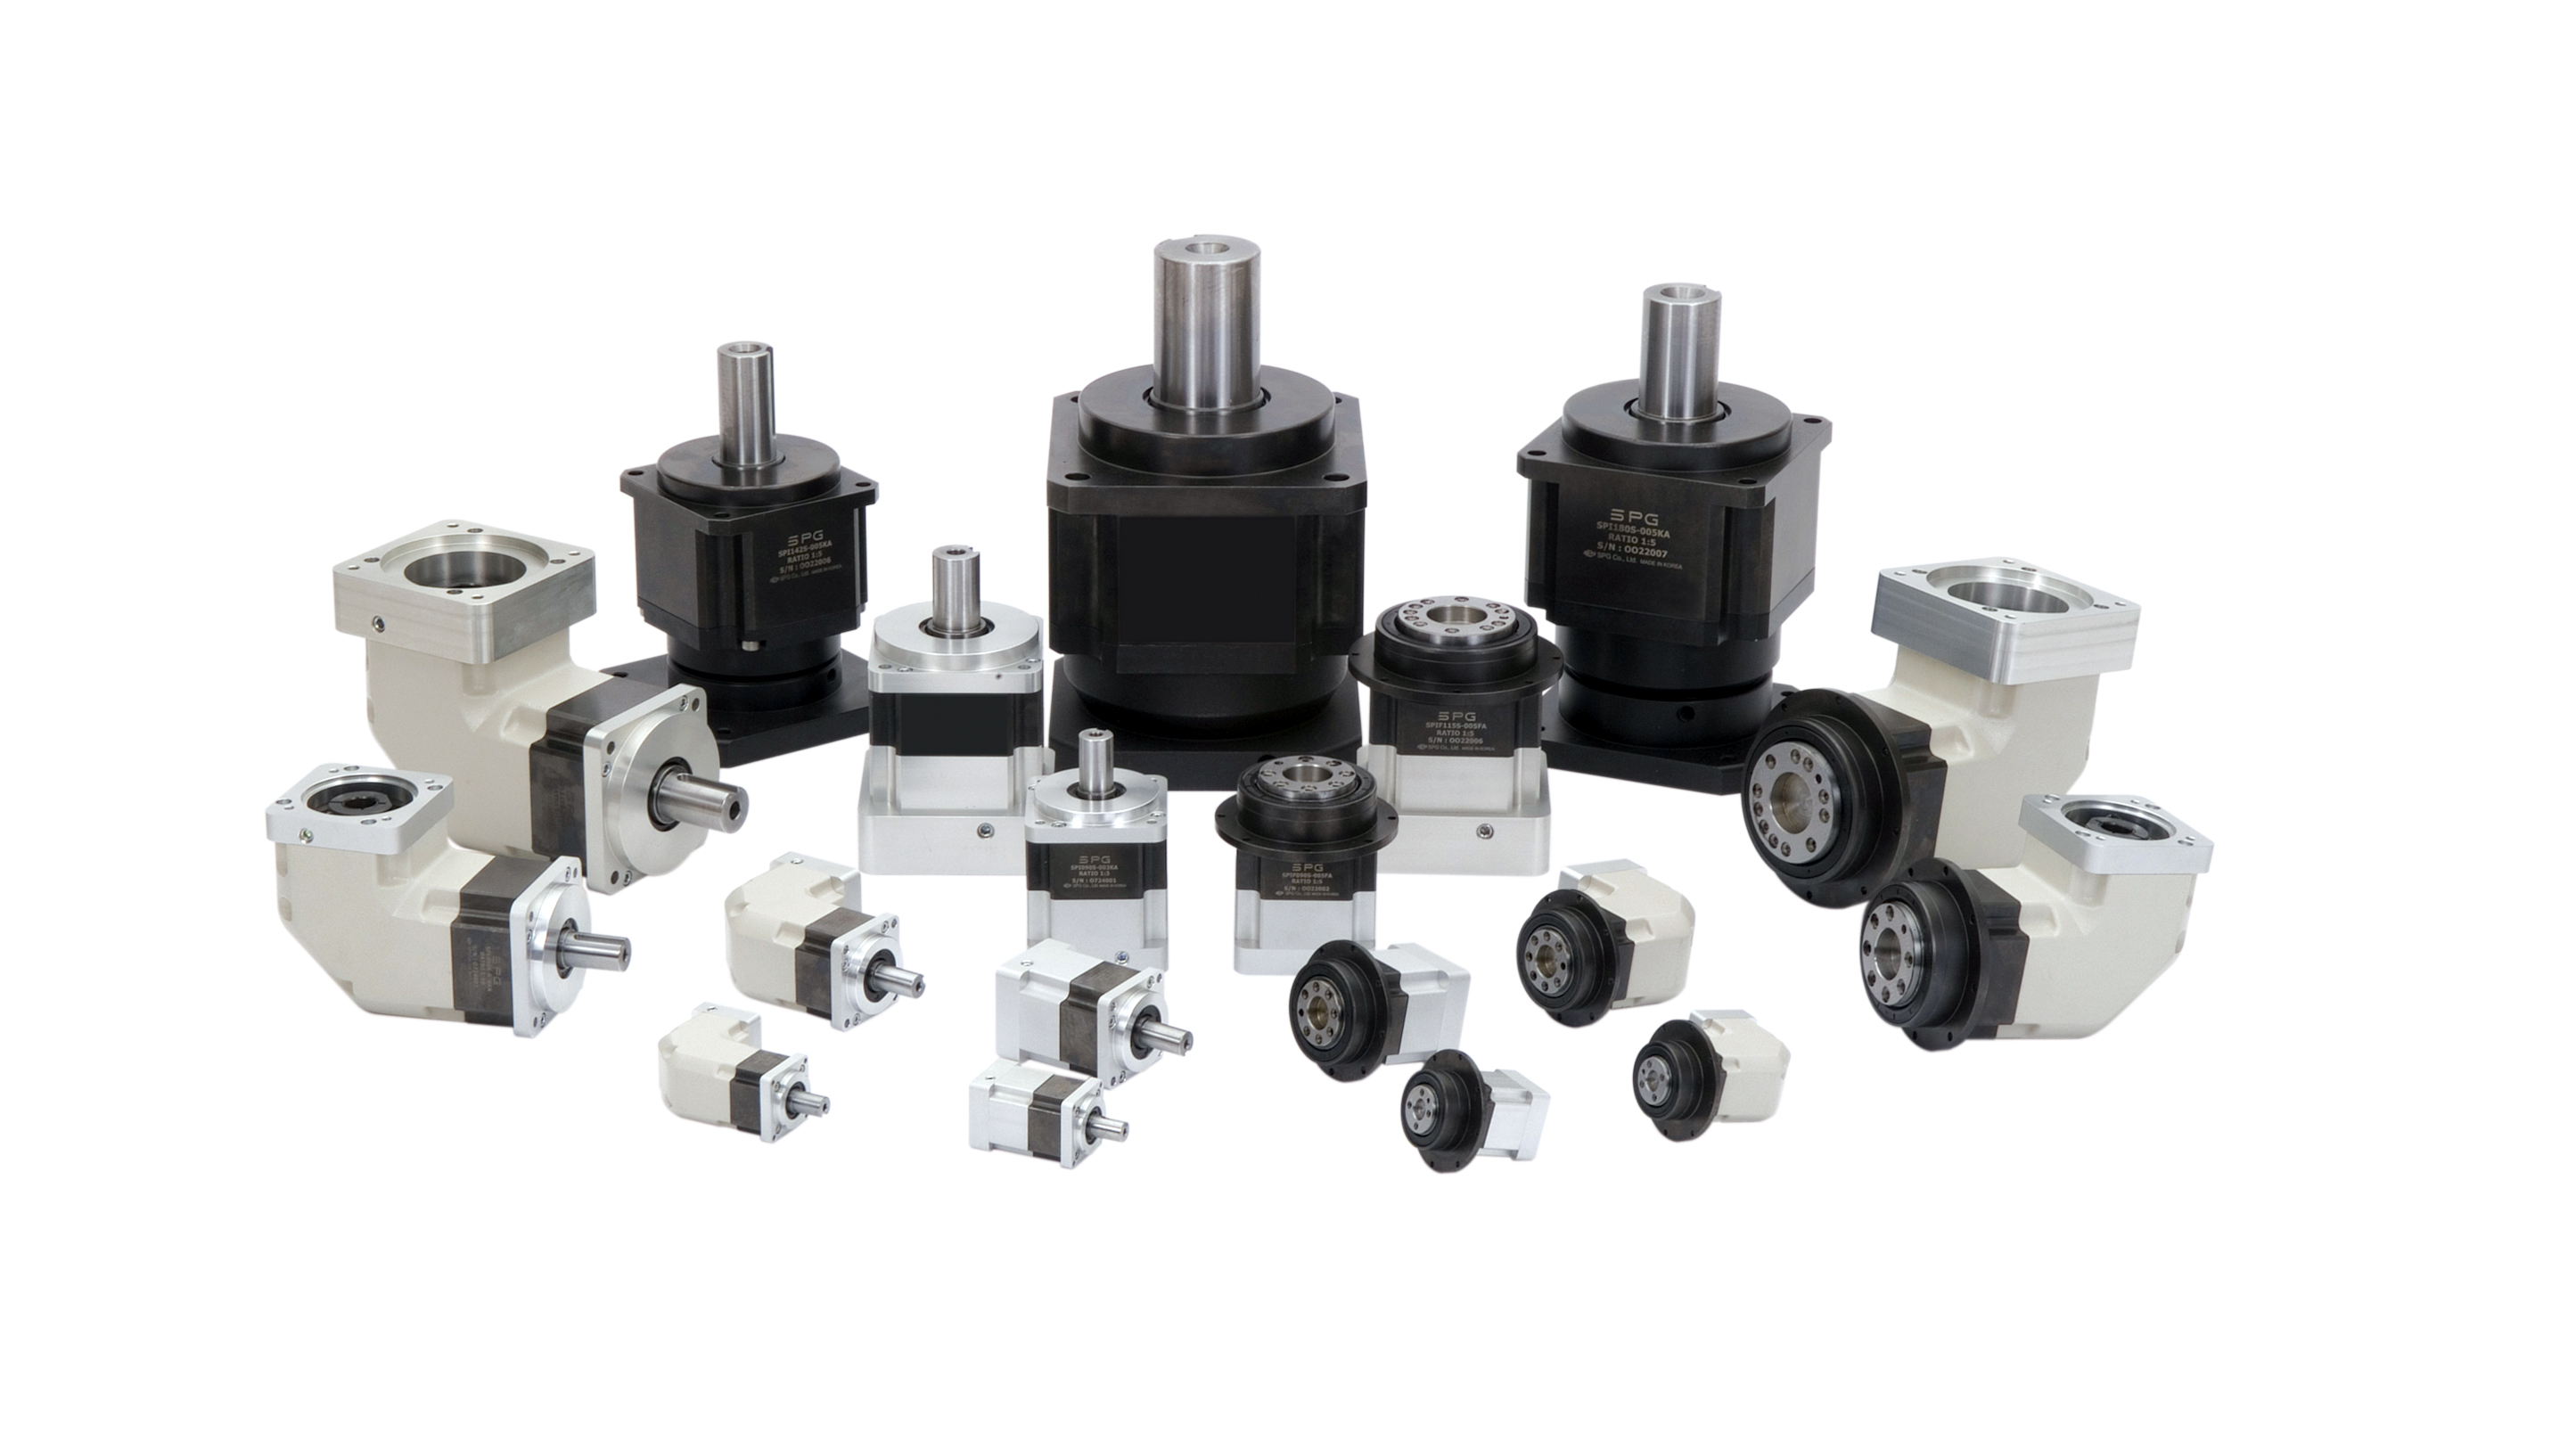 Motorคืออะไร 19171 likewise Kipas Angin together with 6 additionally Quiet Sewage Pump Check Valve additionally Classification Of Electric Motors Part. on shaded pole motor